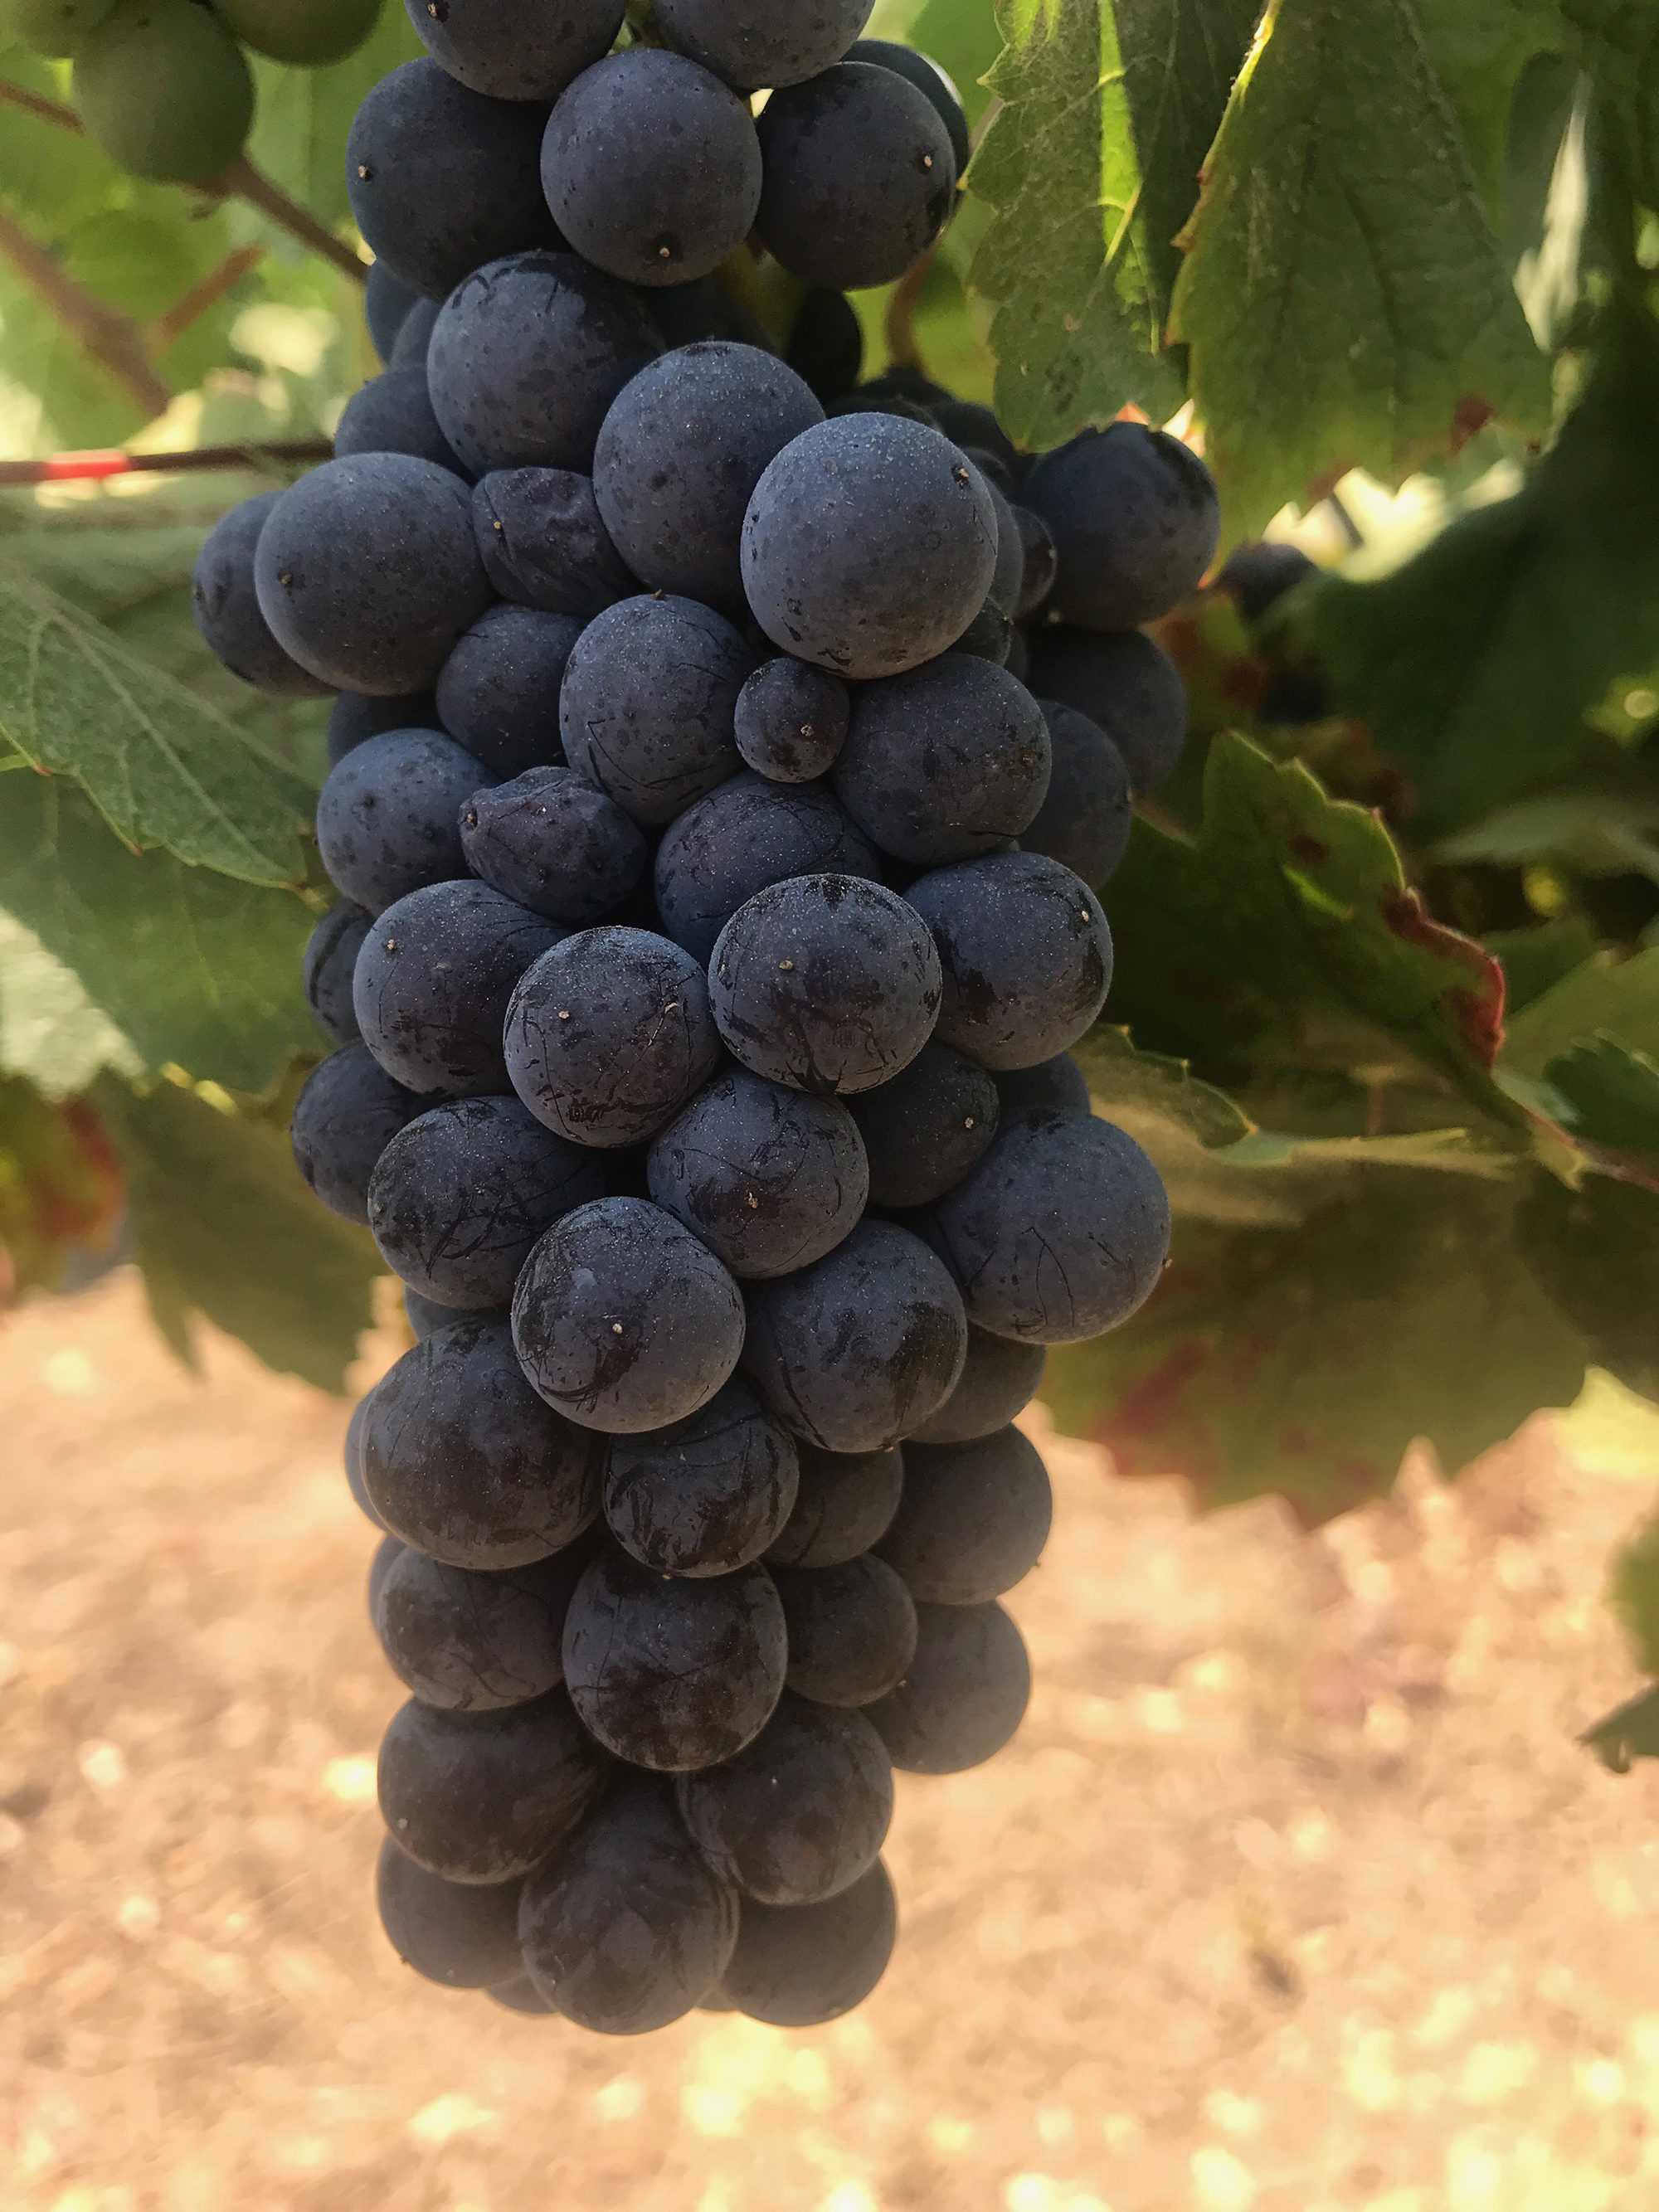 2015 Alberigi grape